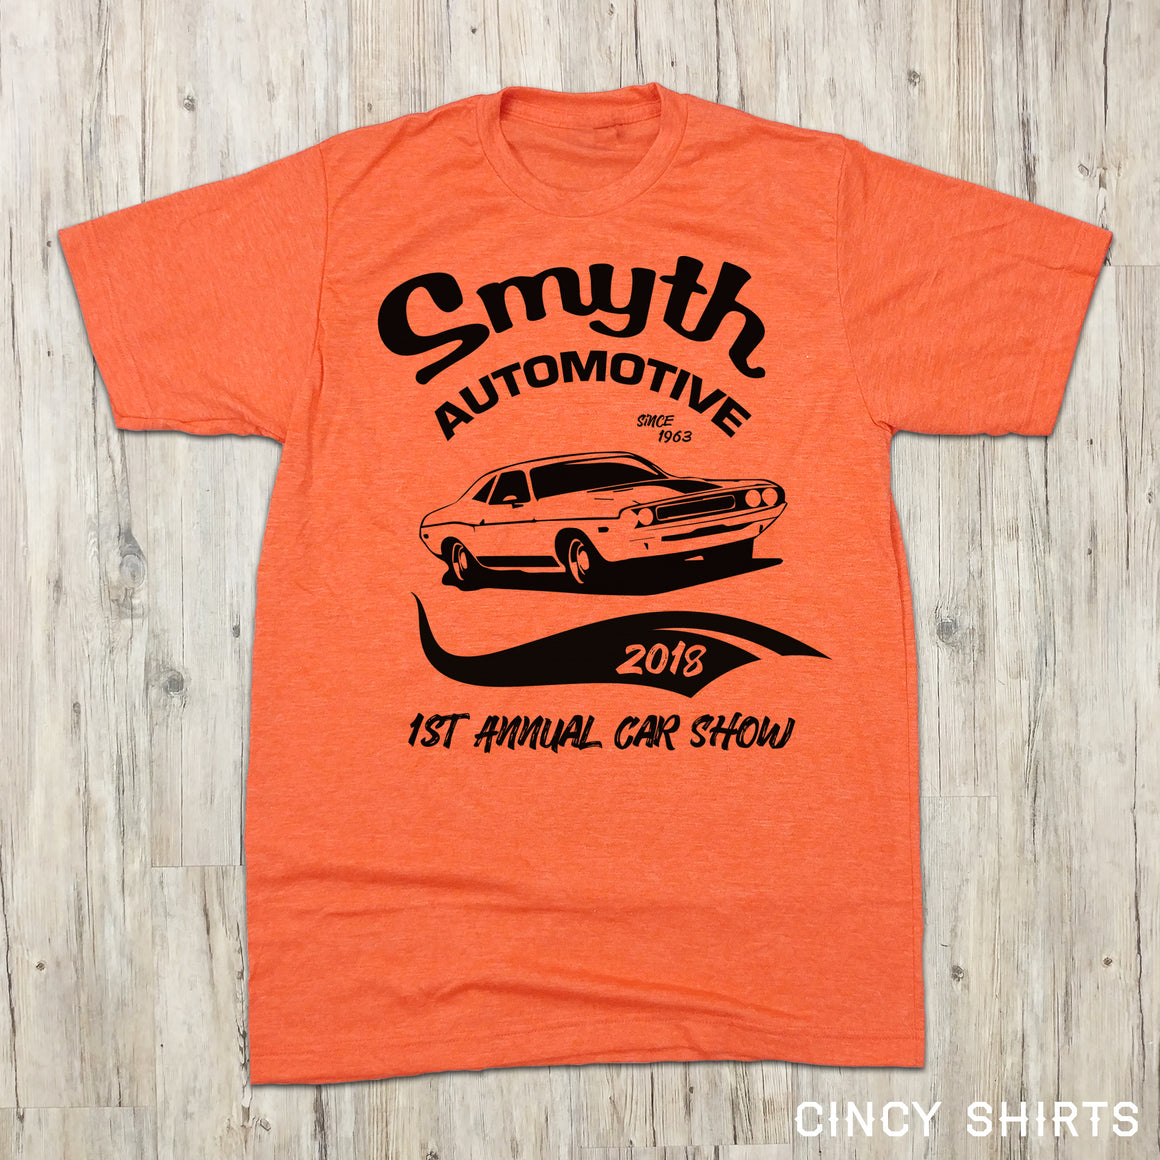 Smyth Automotive 1st Annual Car Show - Cincy Shirts